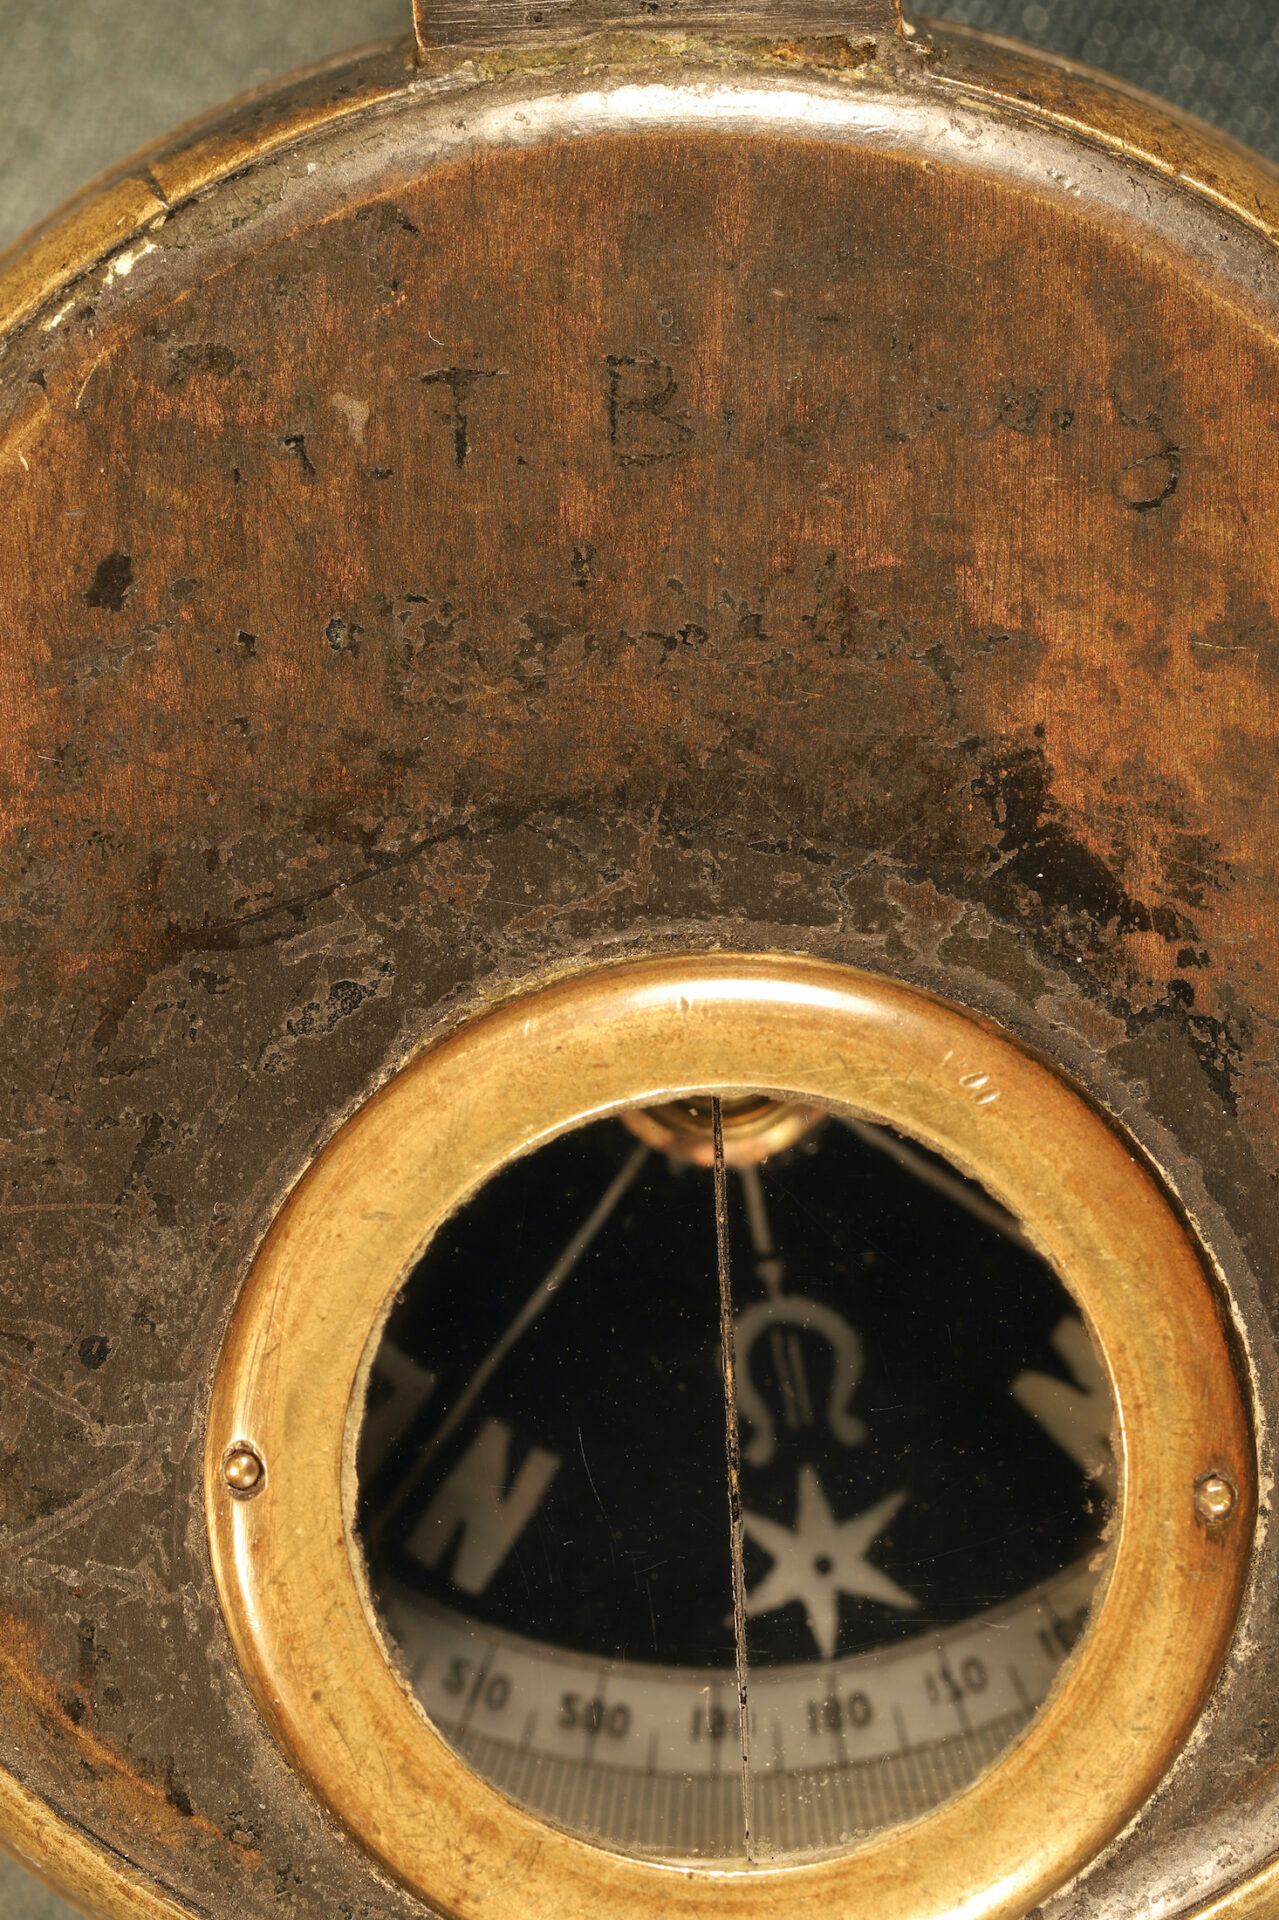 Close up of lid of Negretti & Zambra Prismatic Compass c1895 showing viewing port and inscription